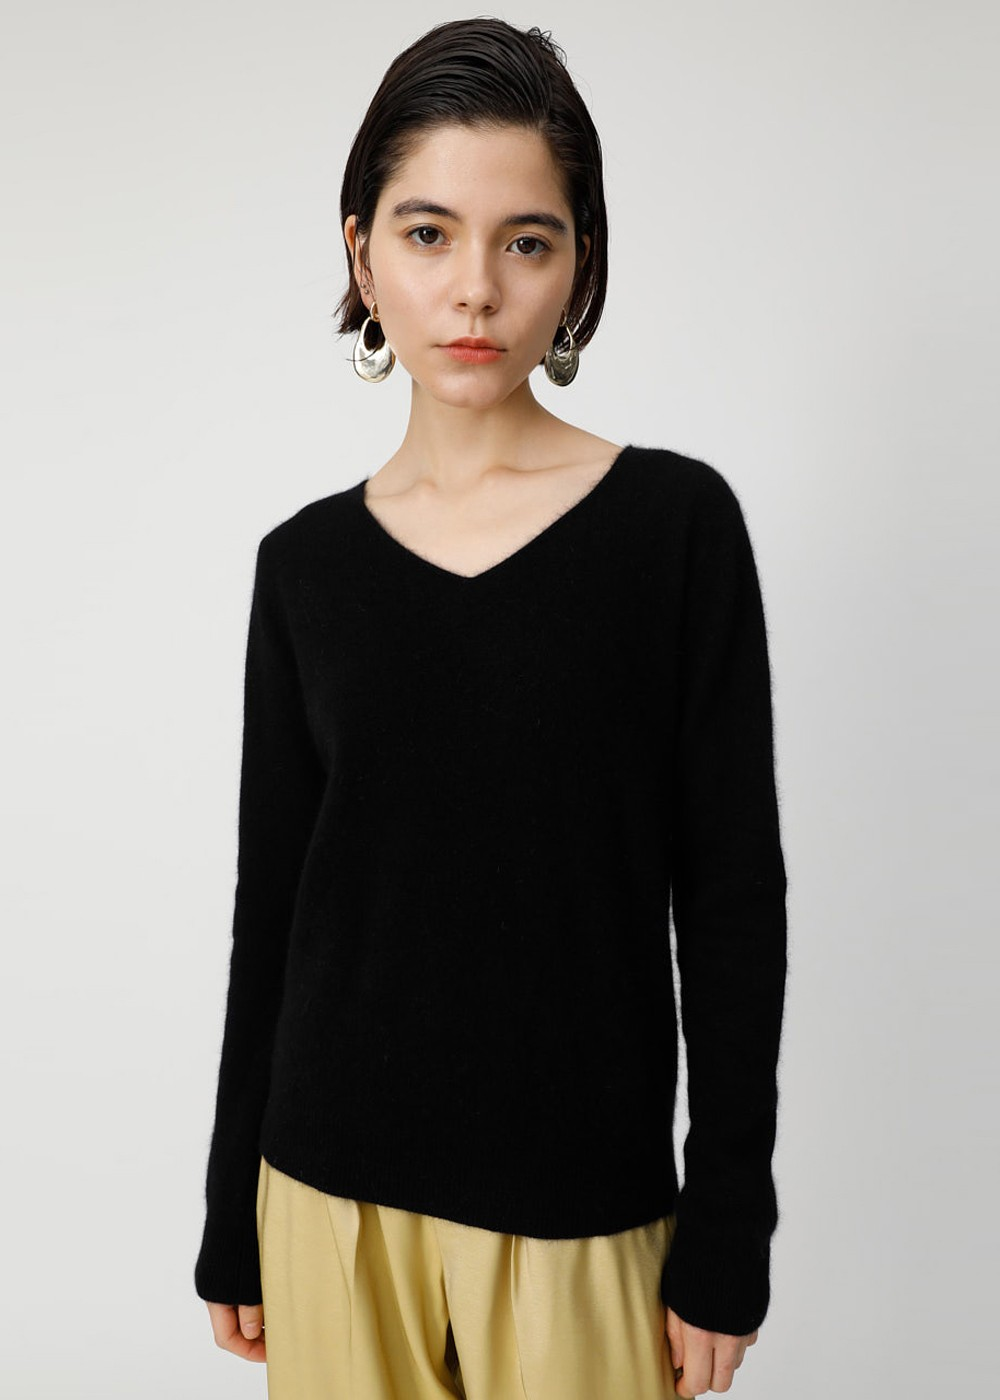 【最大60%OFF】COMFORT V NECK KNIT TOP|BLK|ニット|MOUSSY